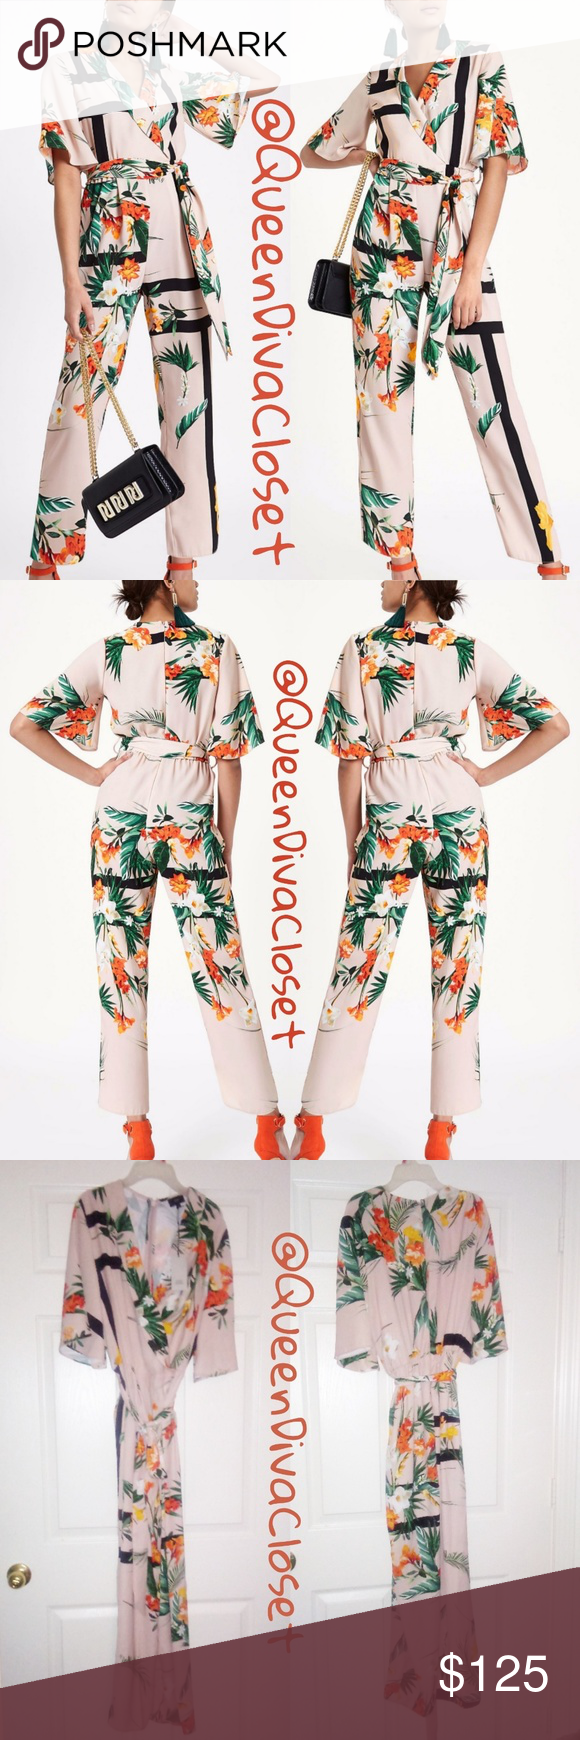 e1aac5ceb7 Kimono asian garden tropical peach wrap jumpsuit This fabulous oriental  style jumpsuit from River Island is